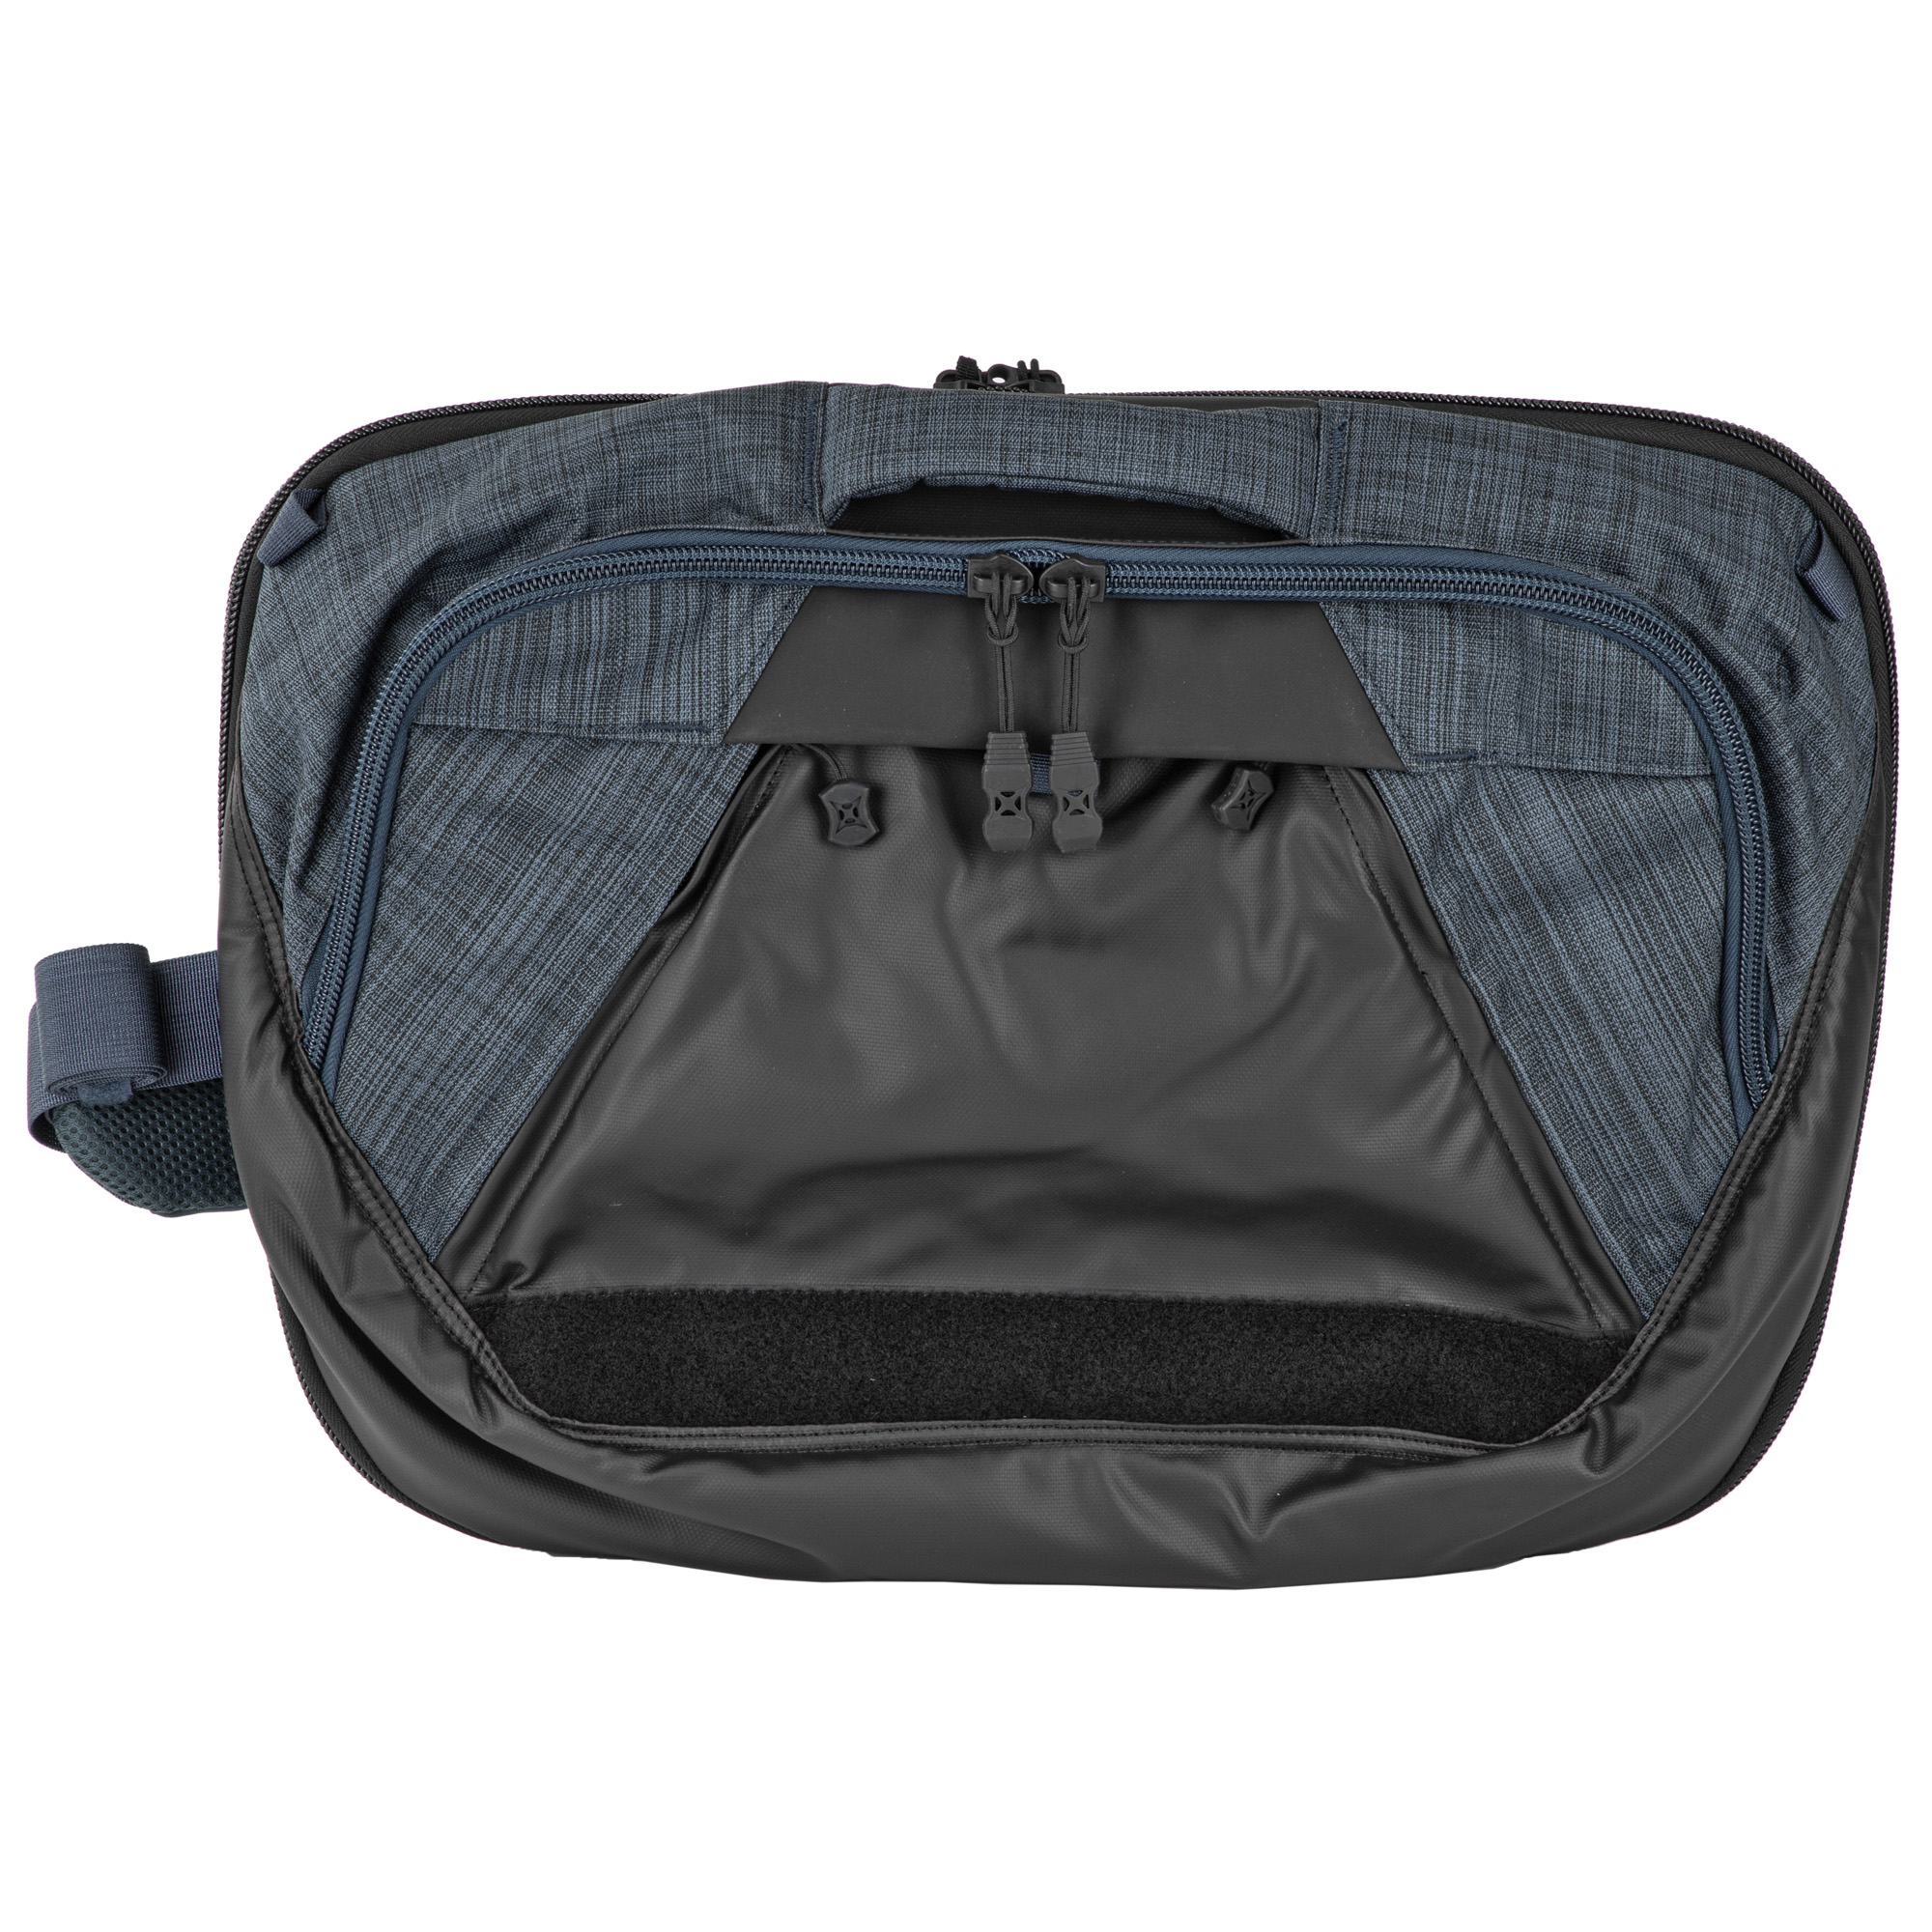 This mid-sized sling bag works and plays large because of the versatility built into every critical feature. The Dead Letter Sling's appearance and functionality can be modified in seconds to adapt to your immediate needs. Multiple carry options let you move confidently and discreetly on the street with invisible CCW and ballistic panel capabilities as well as a full complement of office-friendly aesthetics and organization.